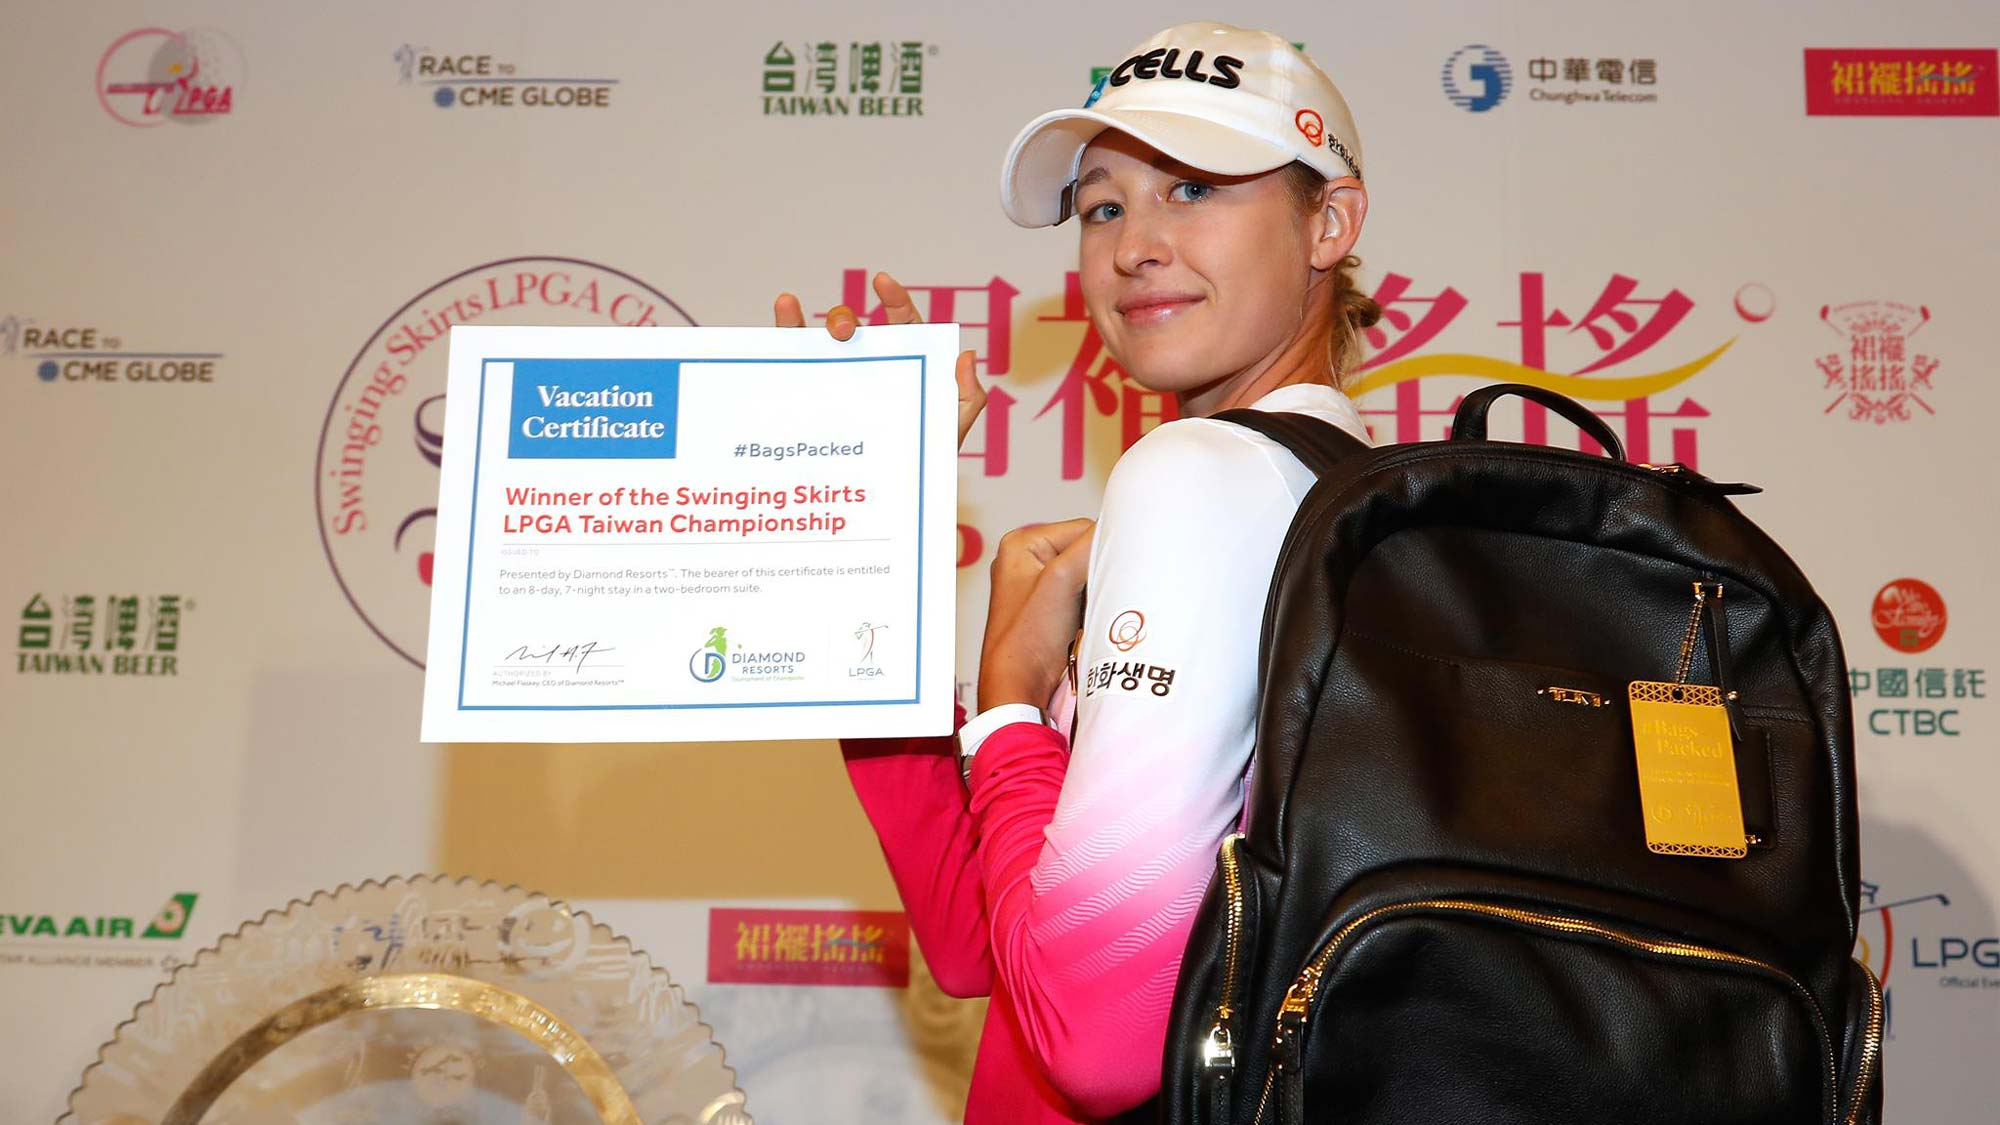 Nelly Korda has her #BagsPacked for the 2019 Diamond Resorts Tournament of Champions Presented by IOA after her first career victory at the Swinging Skirts LPGA Taiwan Championship presented by CTBC